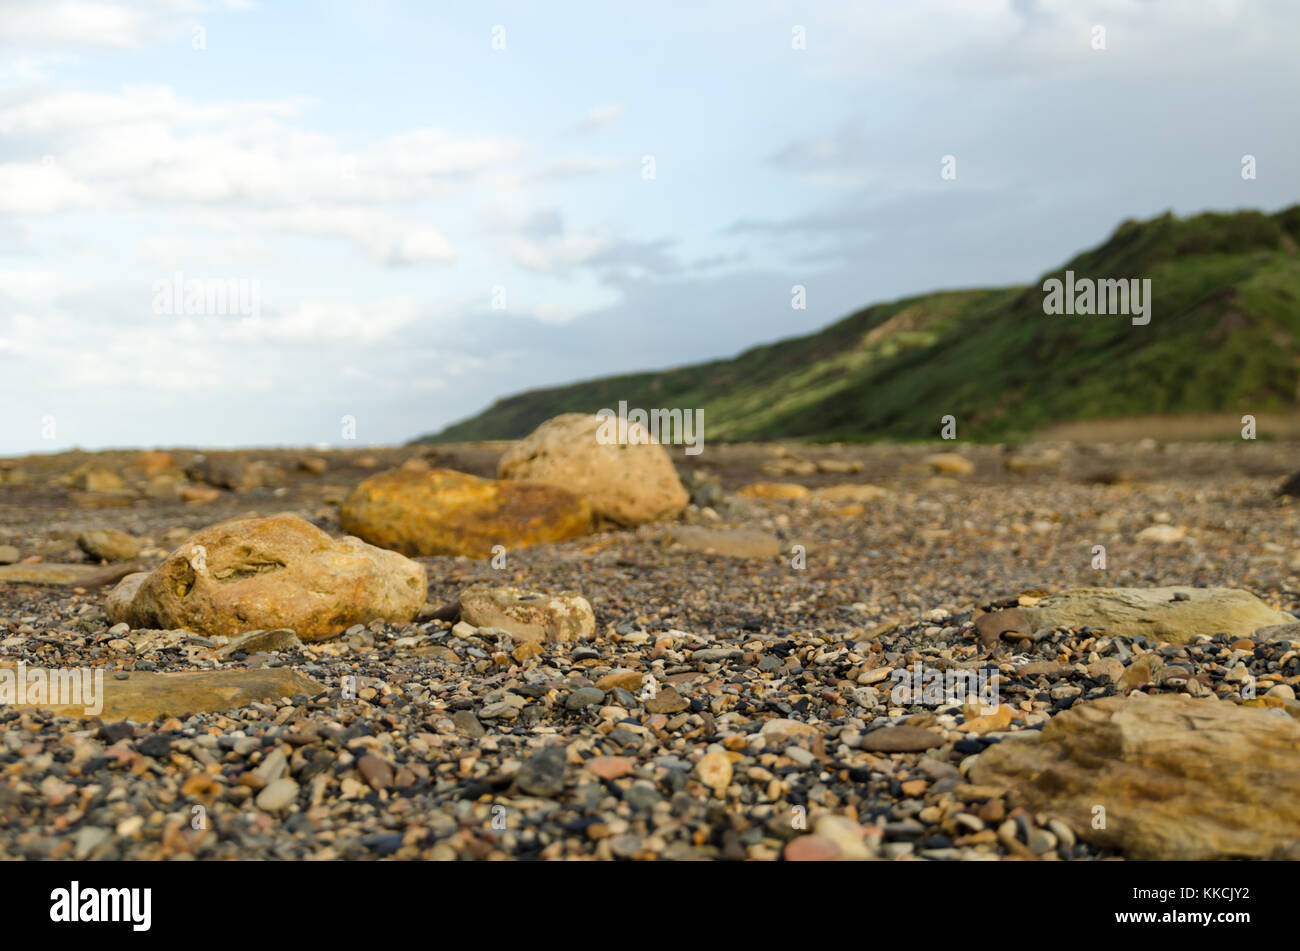 Rocks on Blast Beach, Dawdon, which are stained due to previous dumping of industrial waste - Stock Image